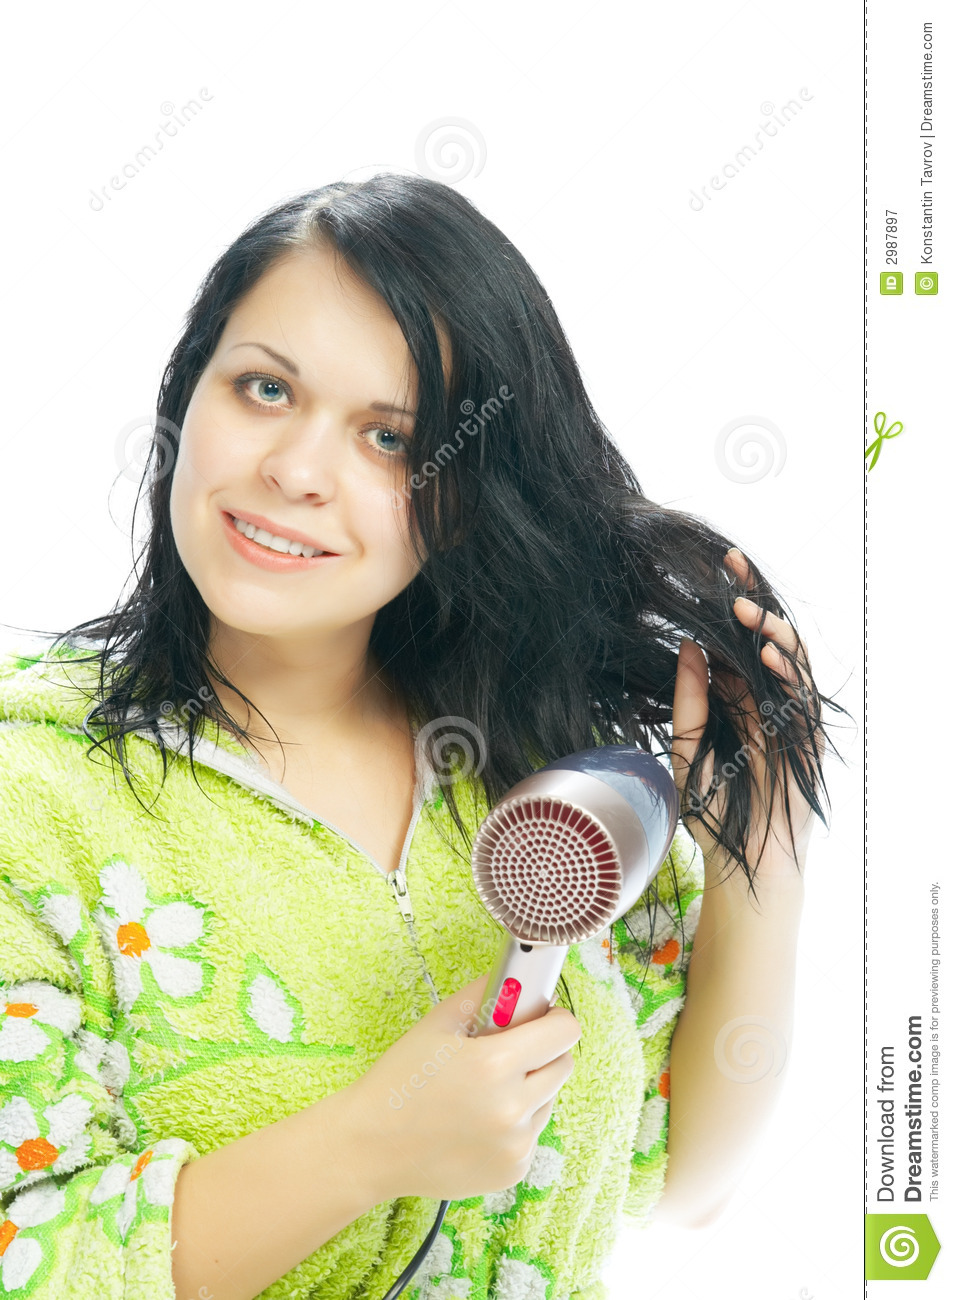 Girl with hair-dryer